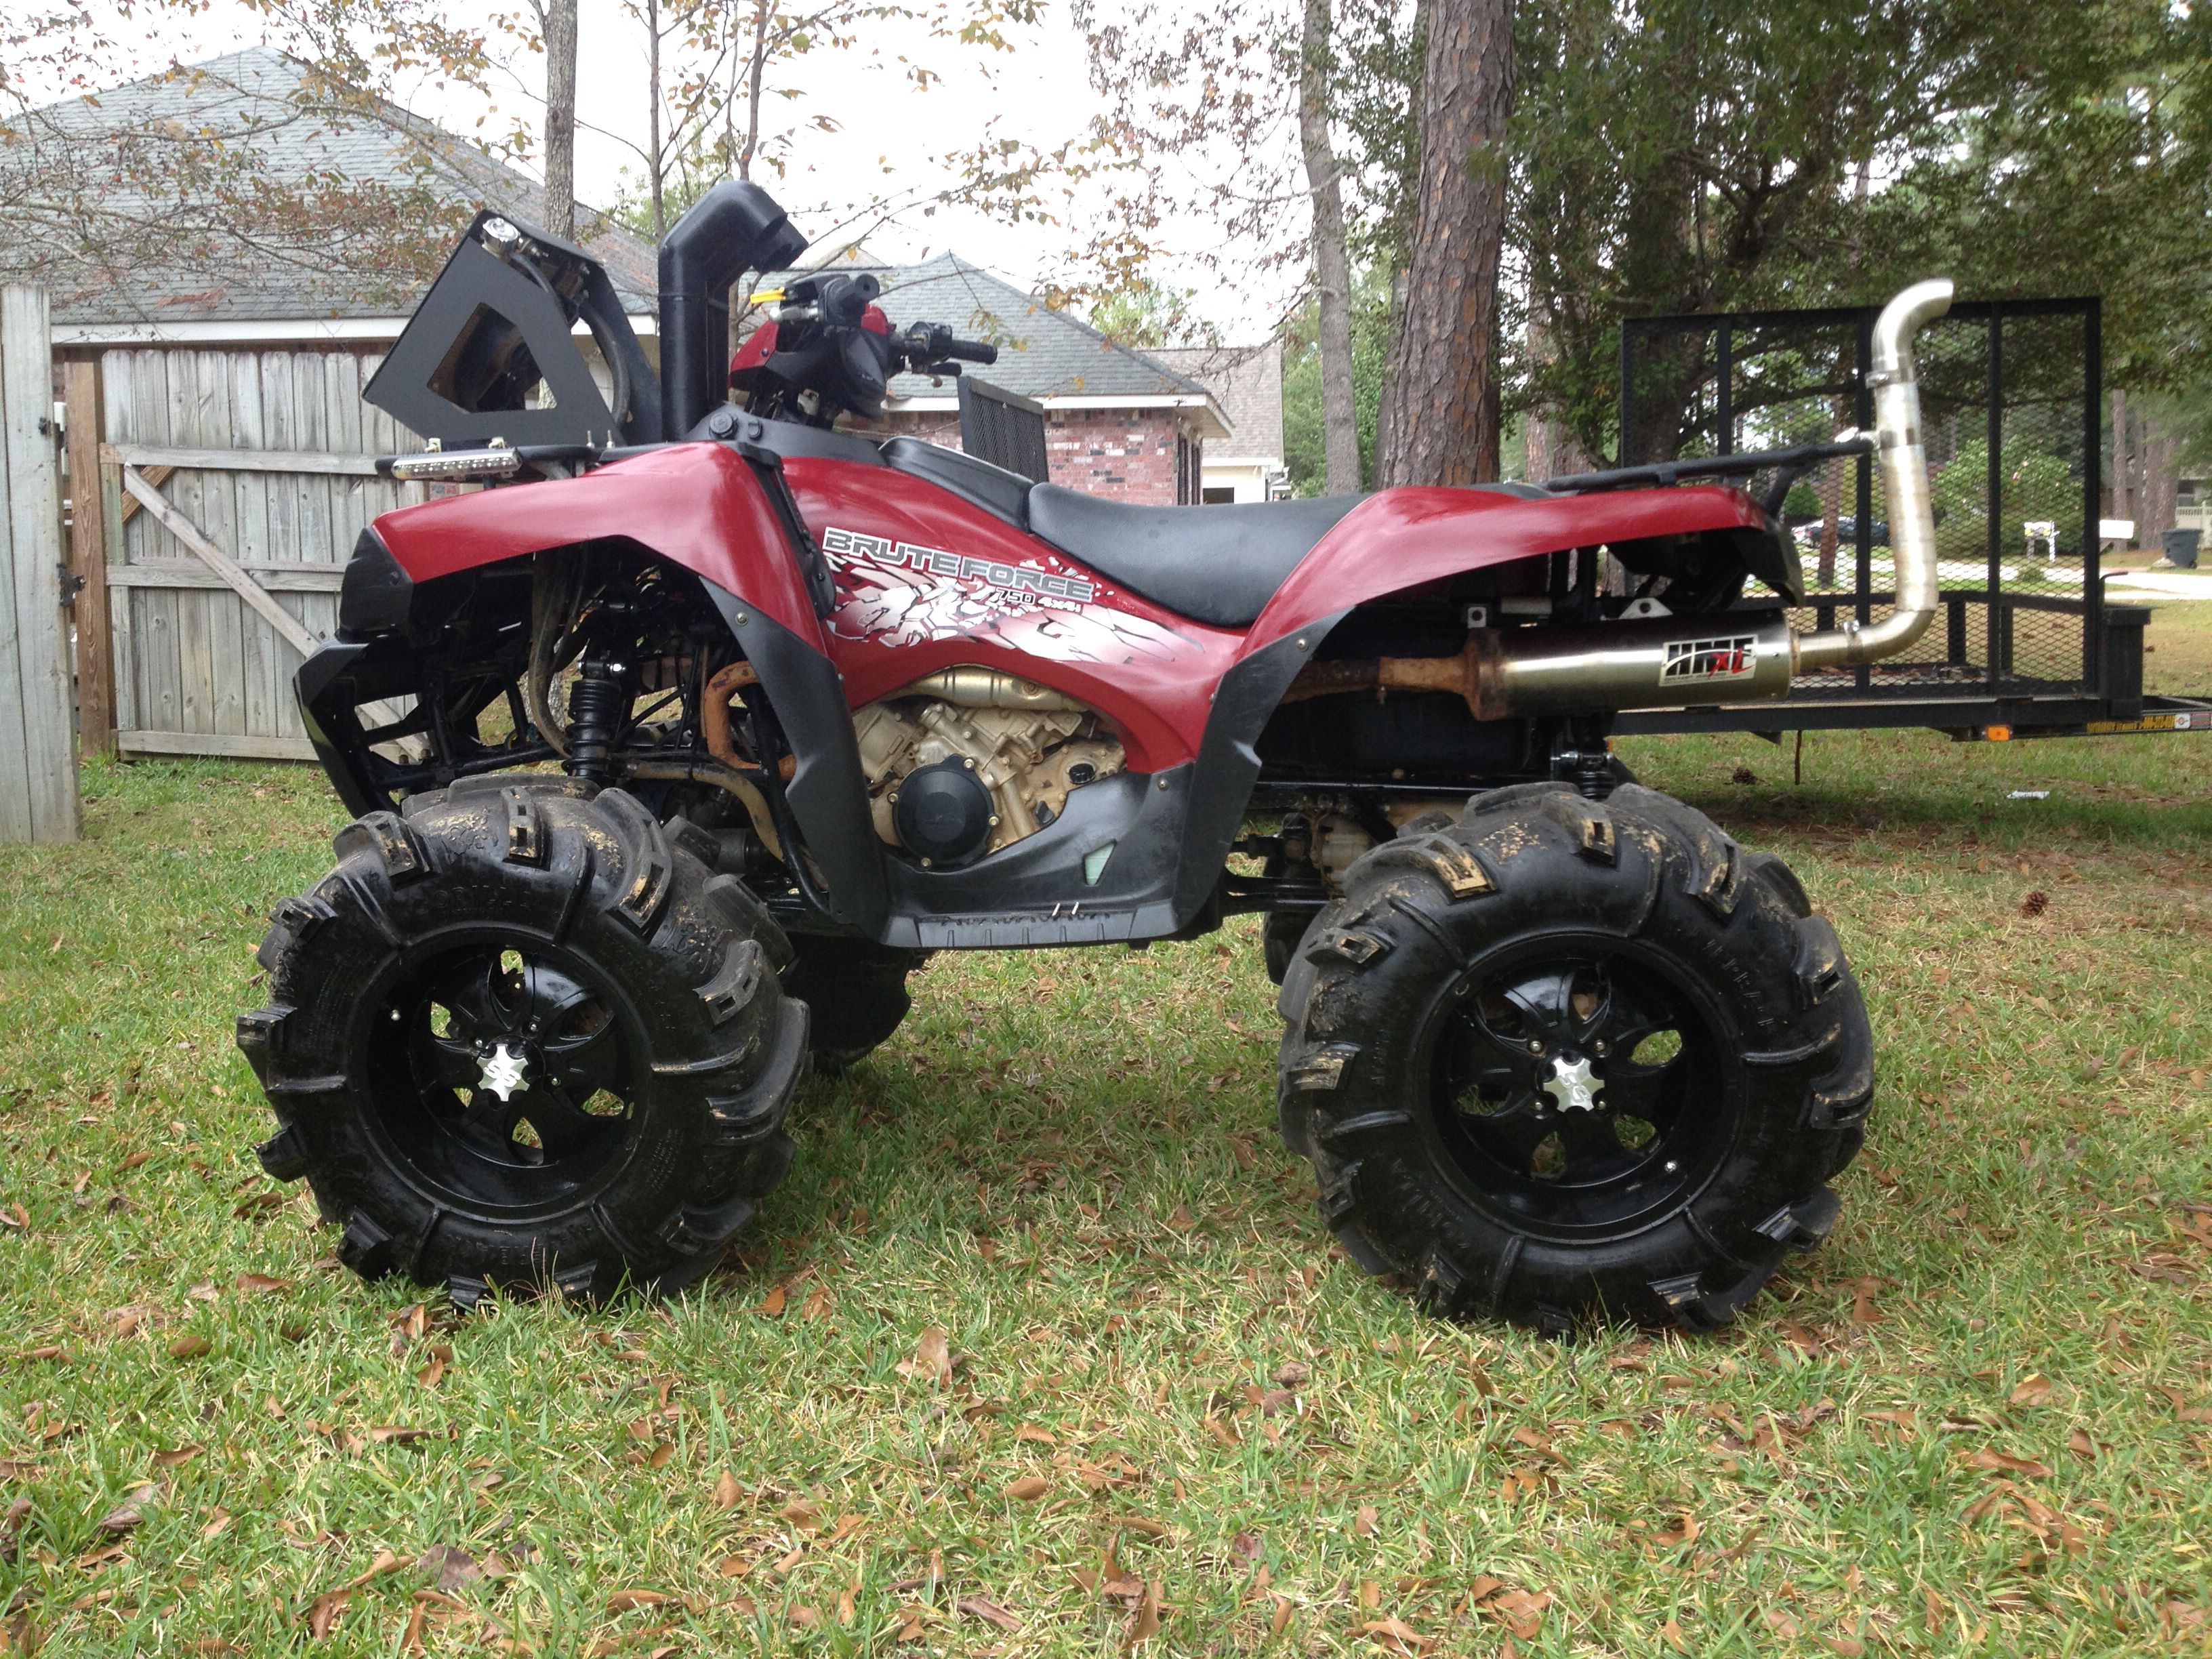 about made and atv is took img to small honda fourwheeler own for shared get steemit months cost hammer our memories best it a four was brother my the which many sale paths me smith running with wheelers